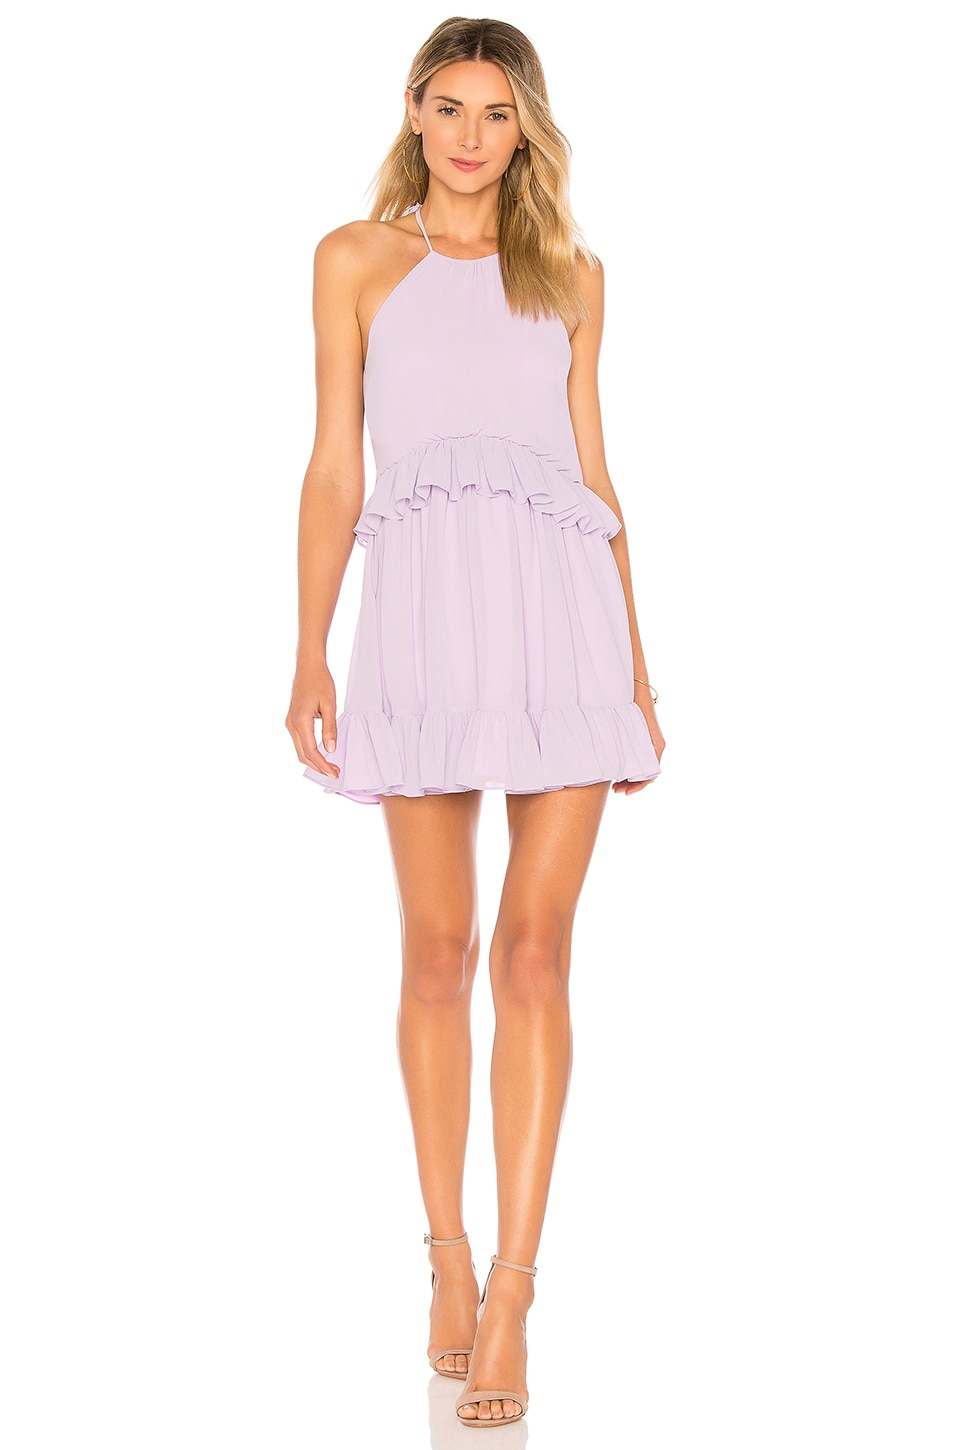 Lovers + Friends Banks Dress in Pastel Lilac